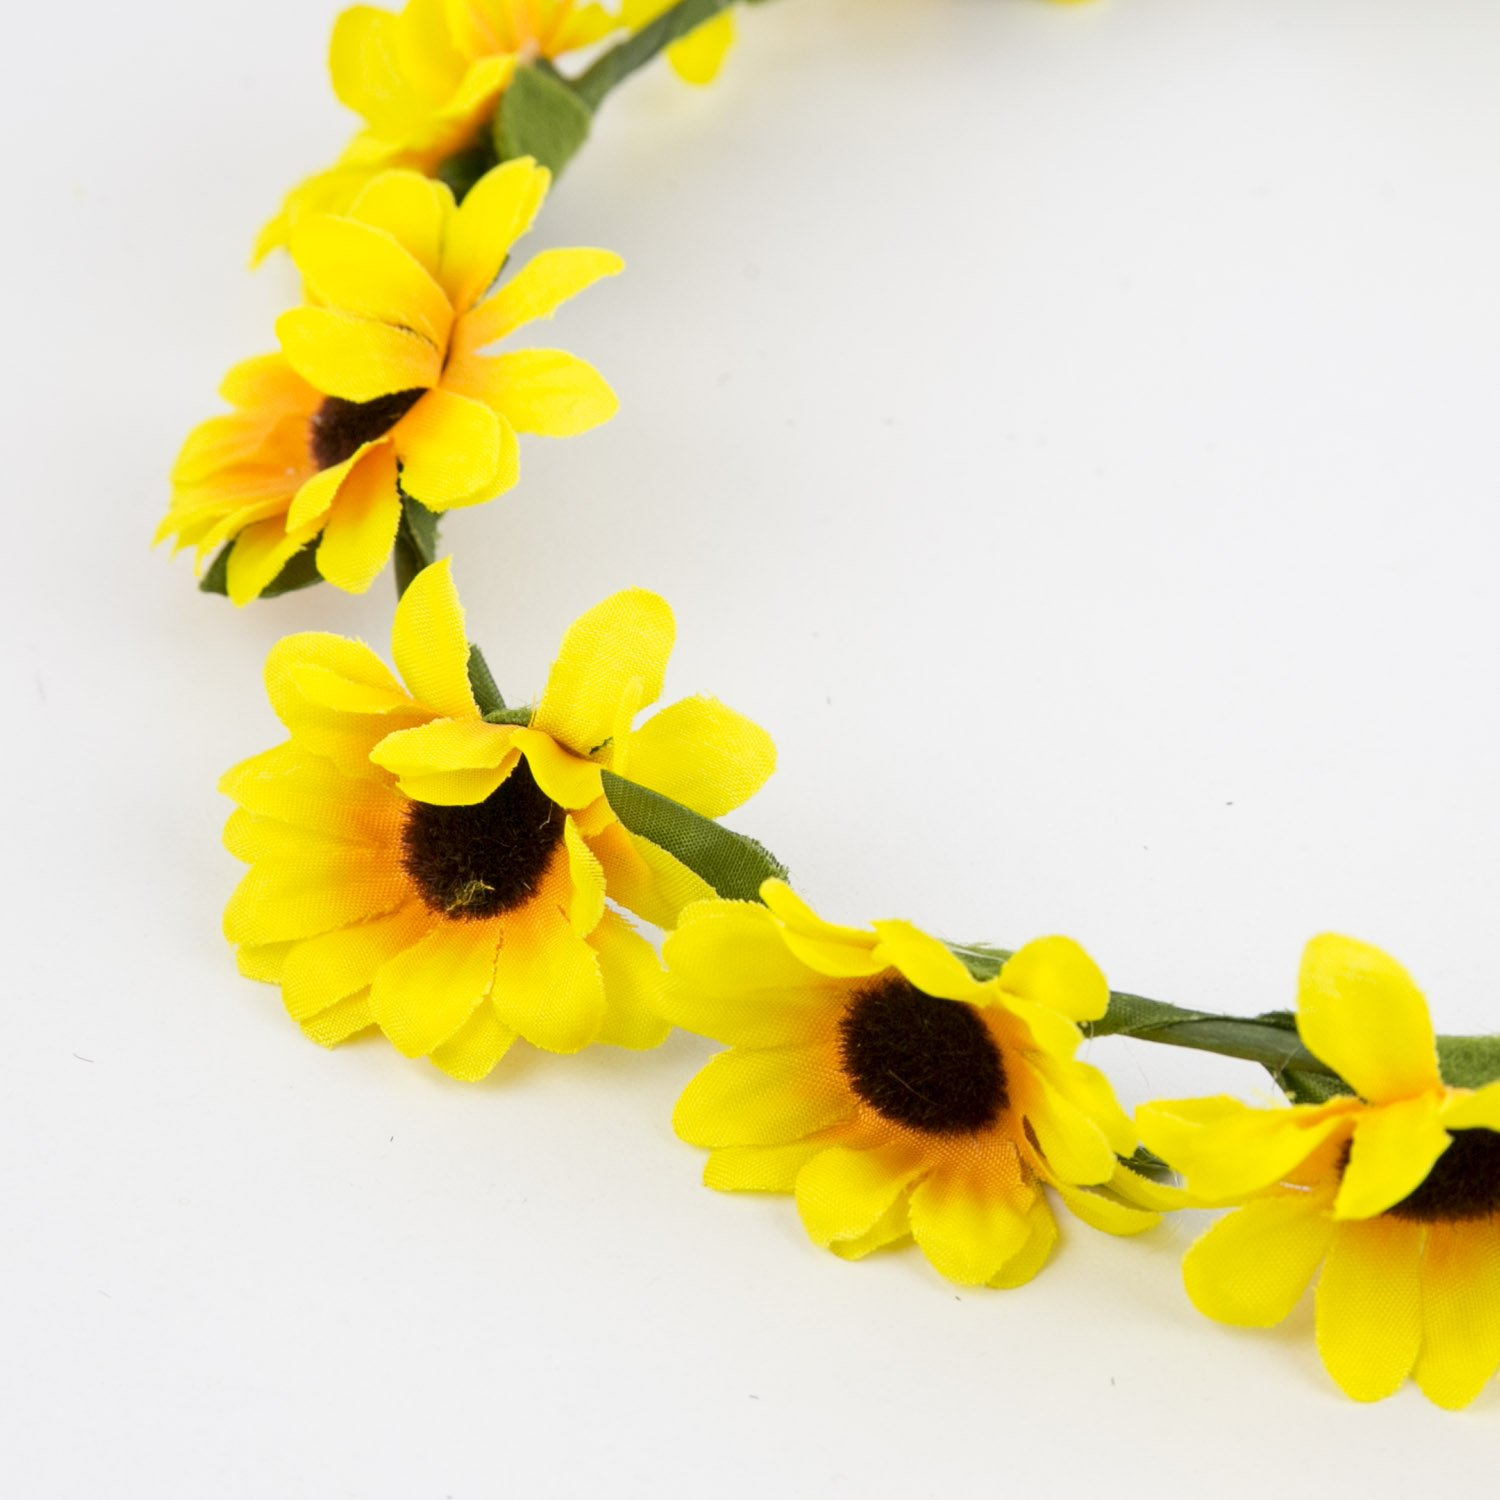 Amazon lux accessories sunflower floral flower yellow head hair amazon lux accessories sunflower floral flower yellow head hair crown lux accessories jewelry mightylinksfo